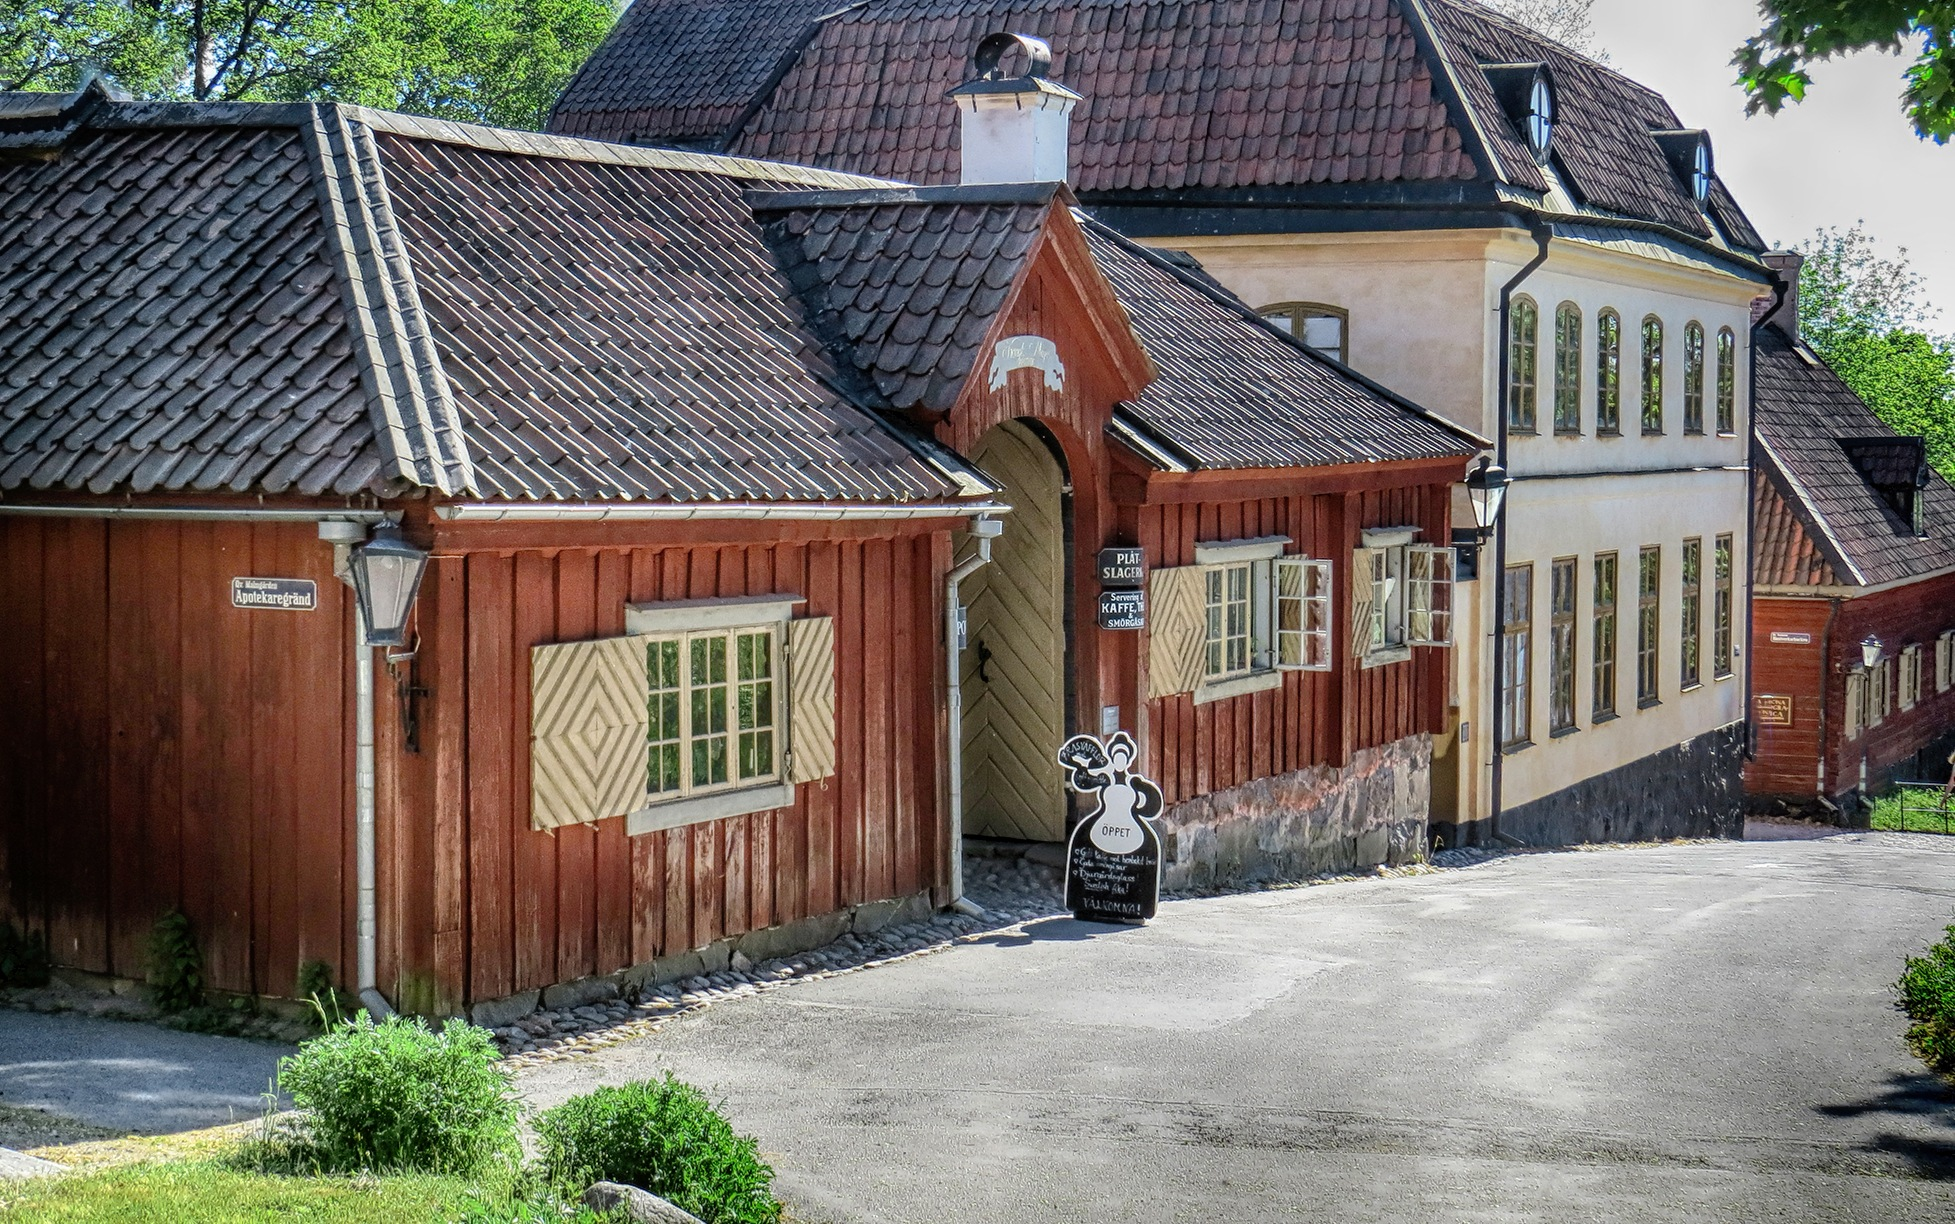 Street from the past by susanne.m.andersson.92